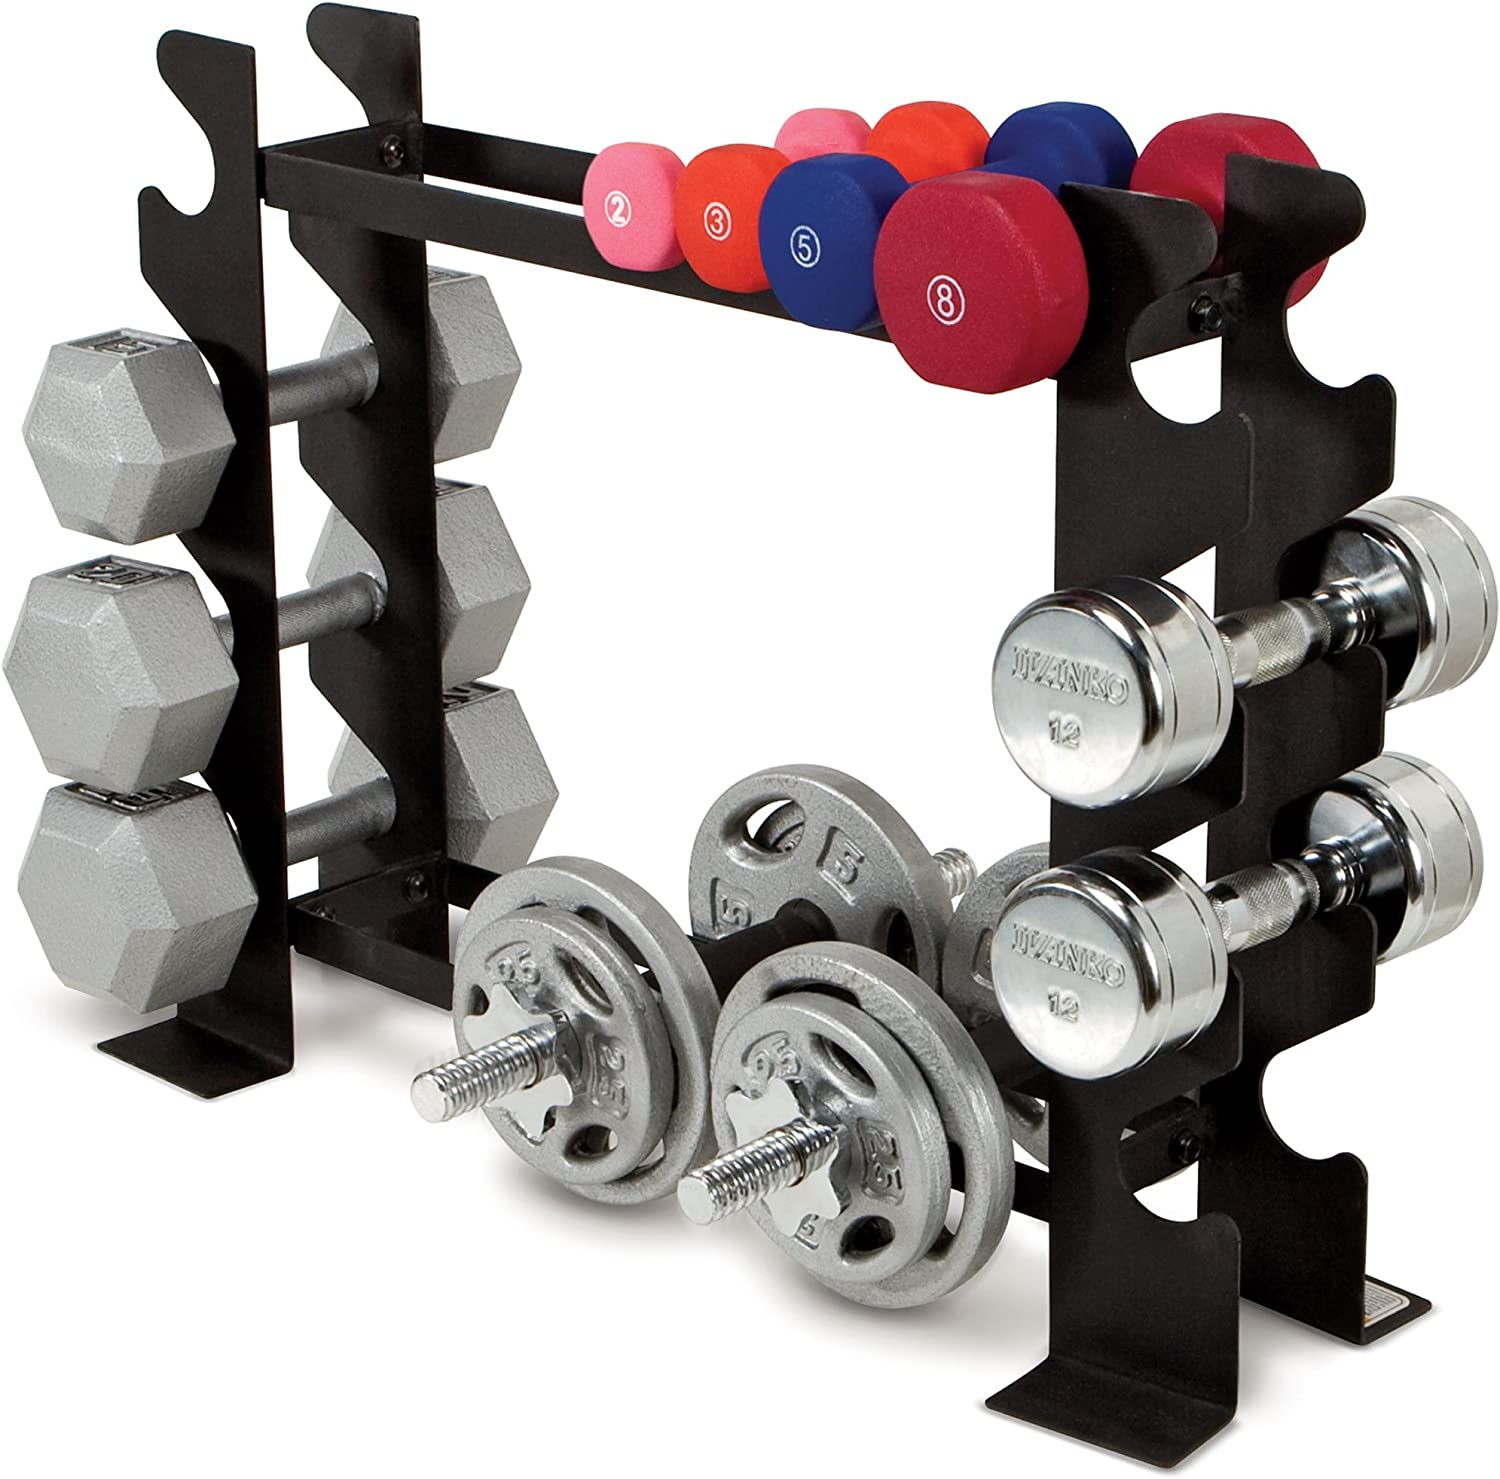 Marcy Compact Dumbbell Rack Free Weight Stand for Home Gym DBR-56 Renewed